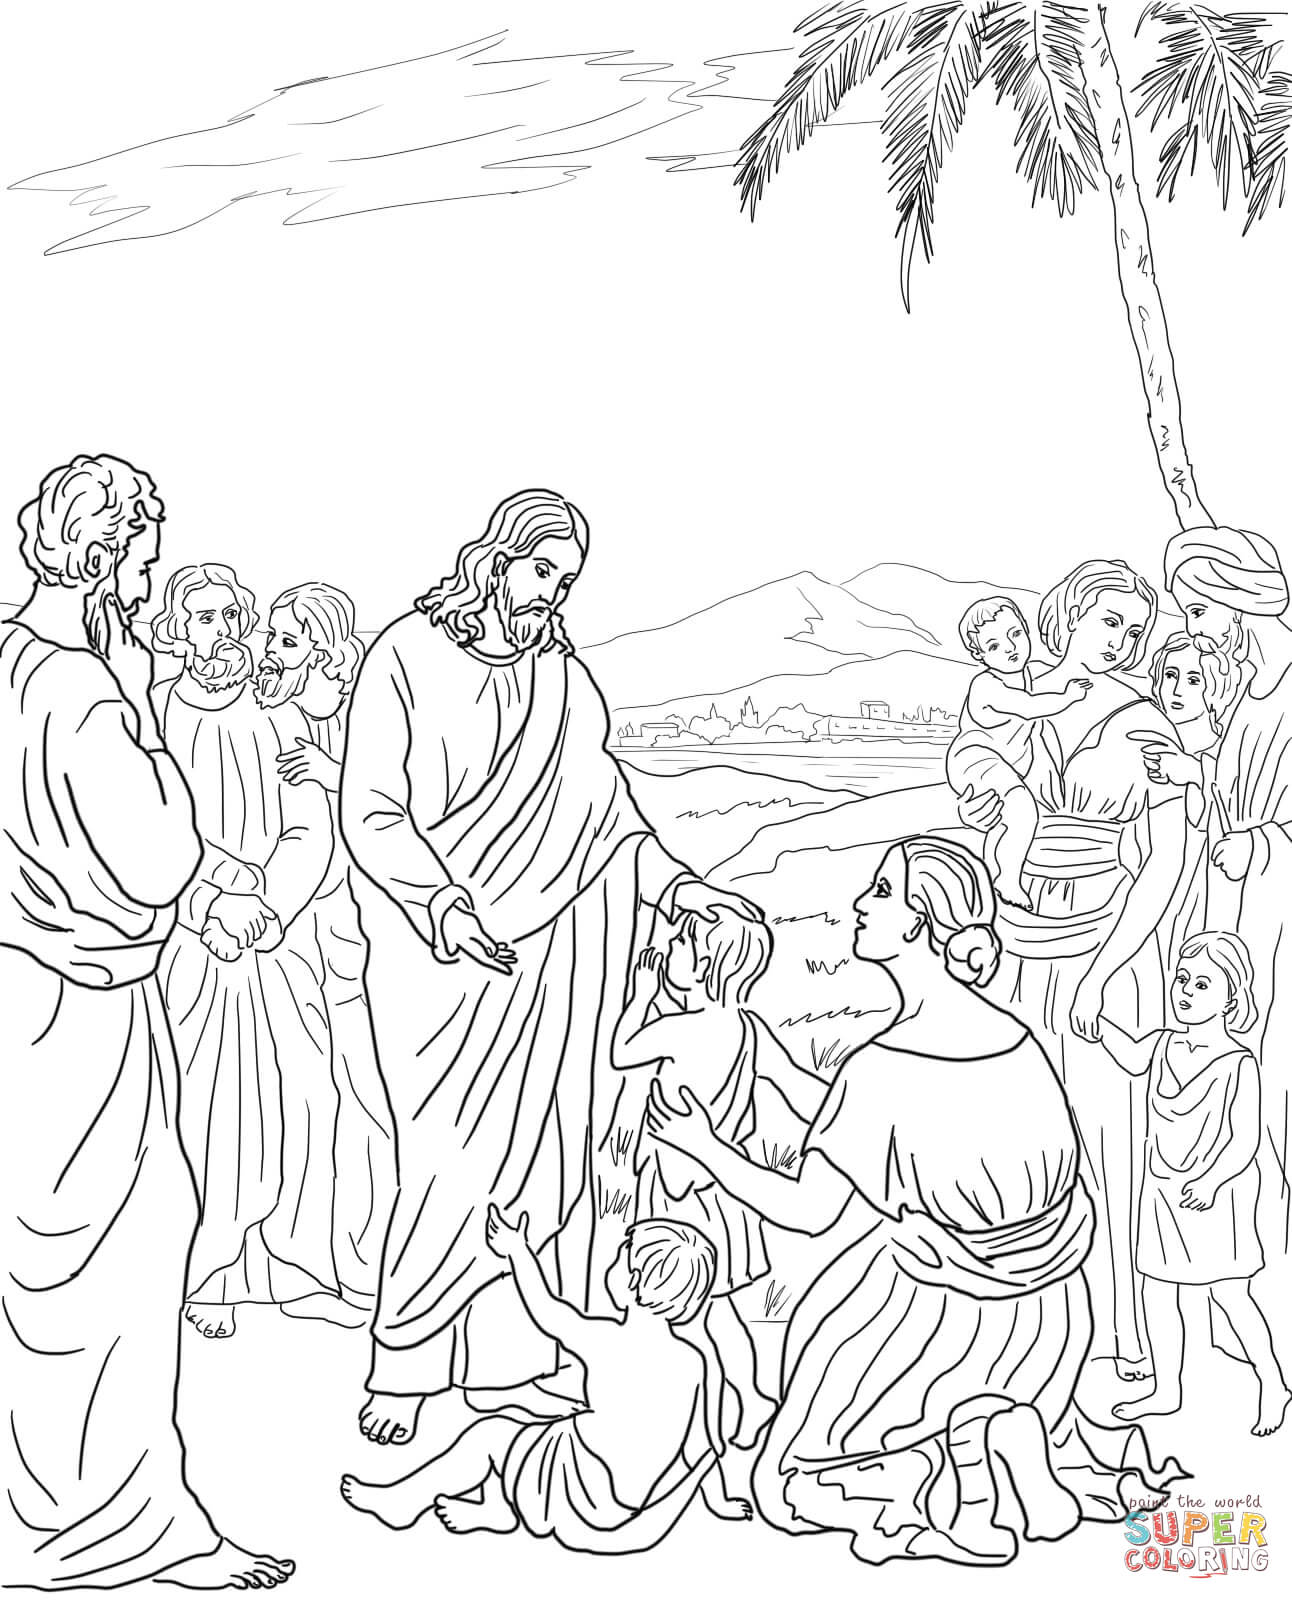 Coloring Pages Jesus And The Children Coloring Pages jesus with little children coloring page az pages blesses the free printable coloring